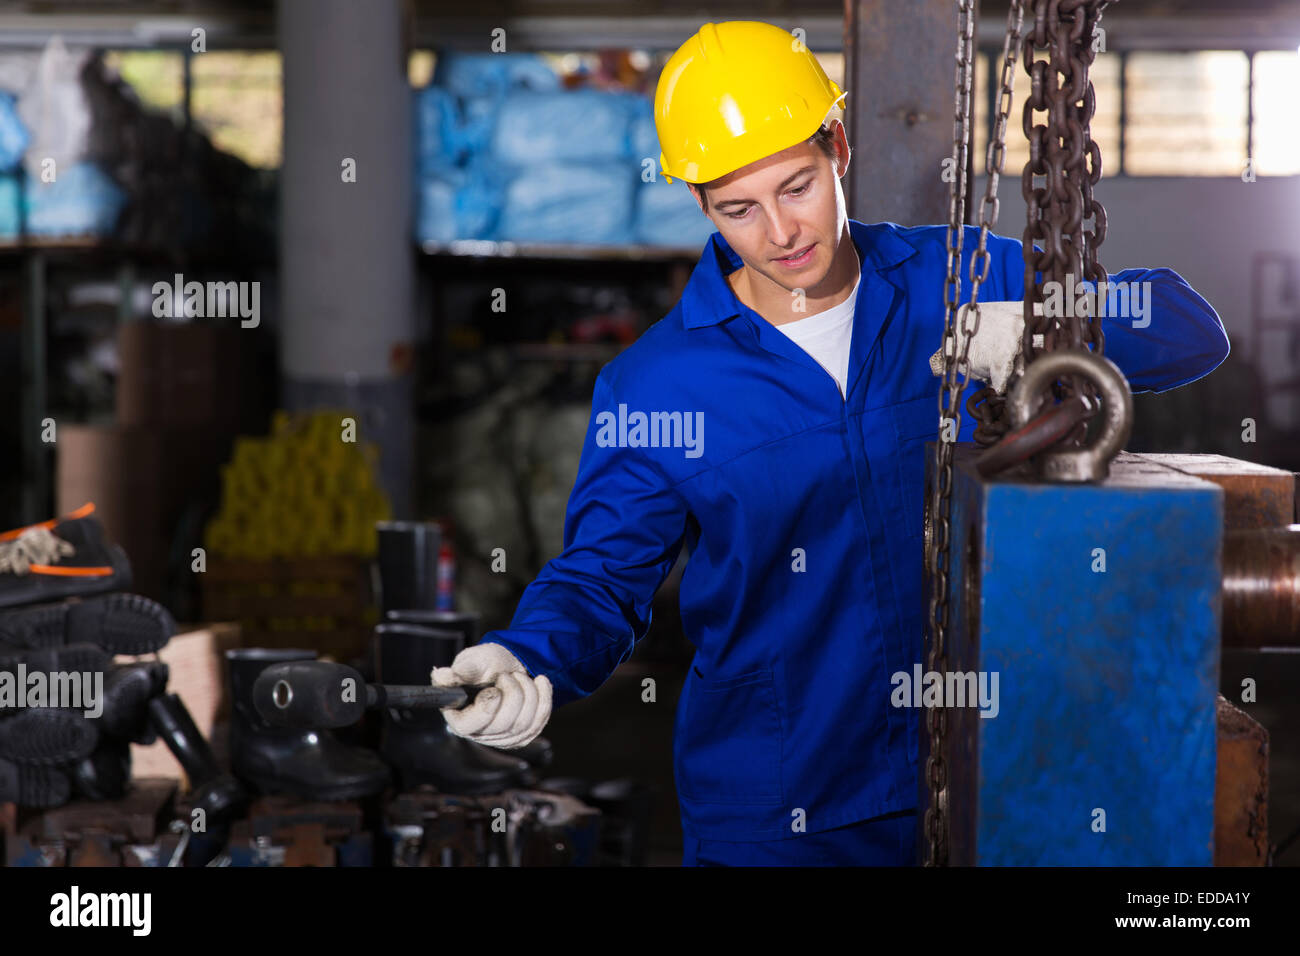 young industrial craftsman working in workshop - Stock Image